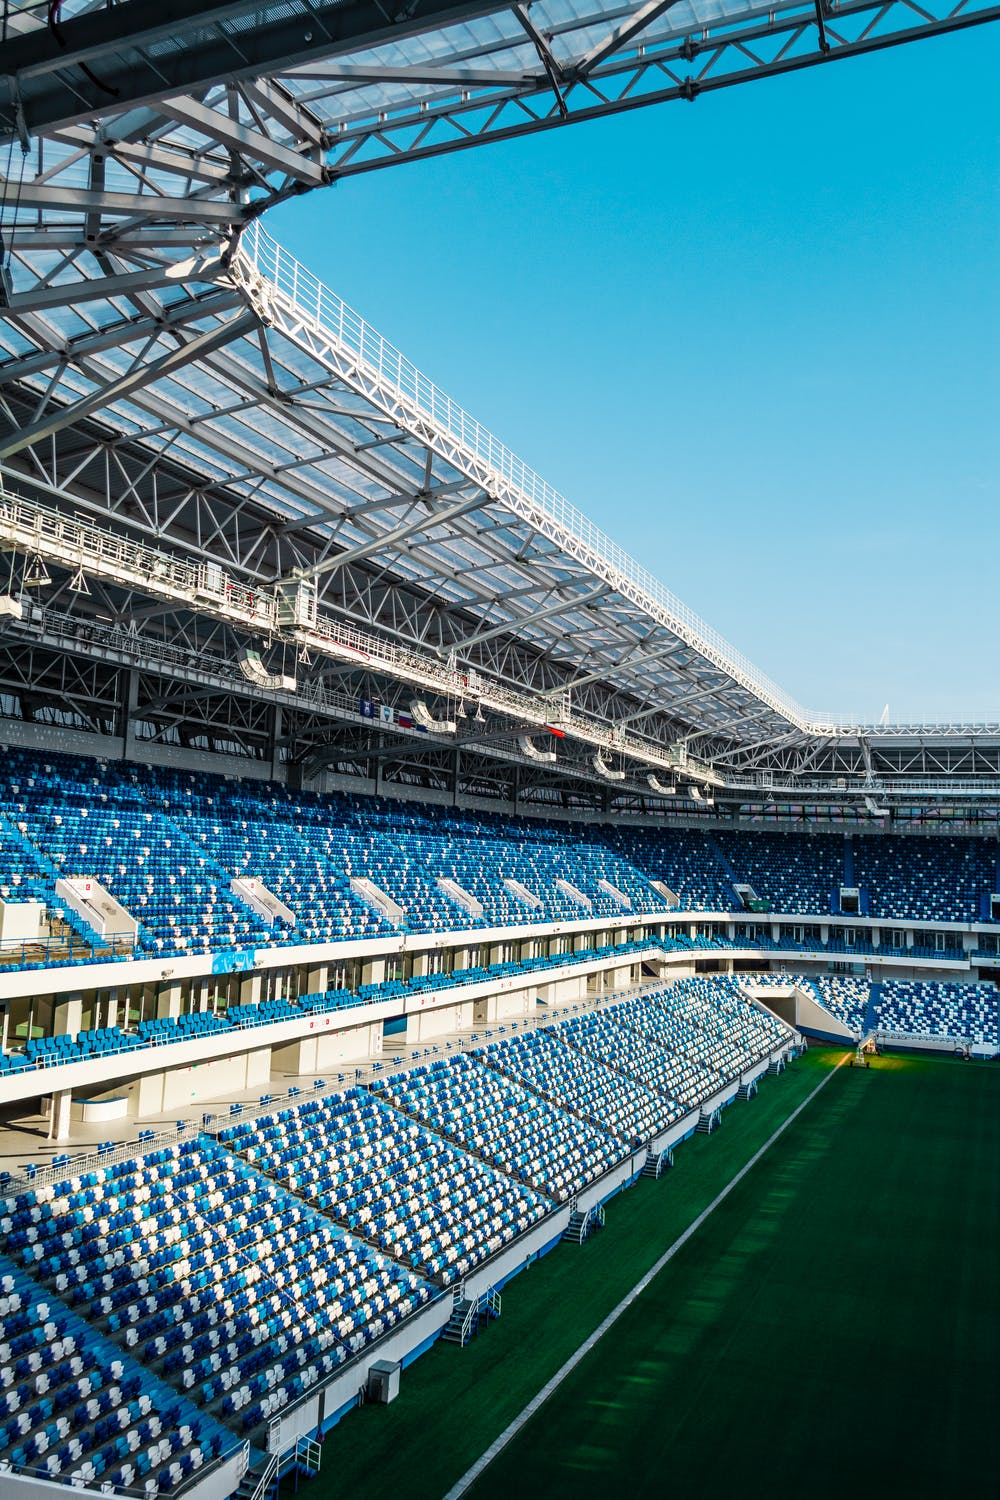 Fiberglass Conduit Systems: 5 Reasons Why It's the Best Choice for Stadiums